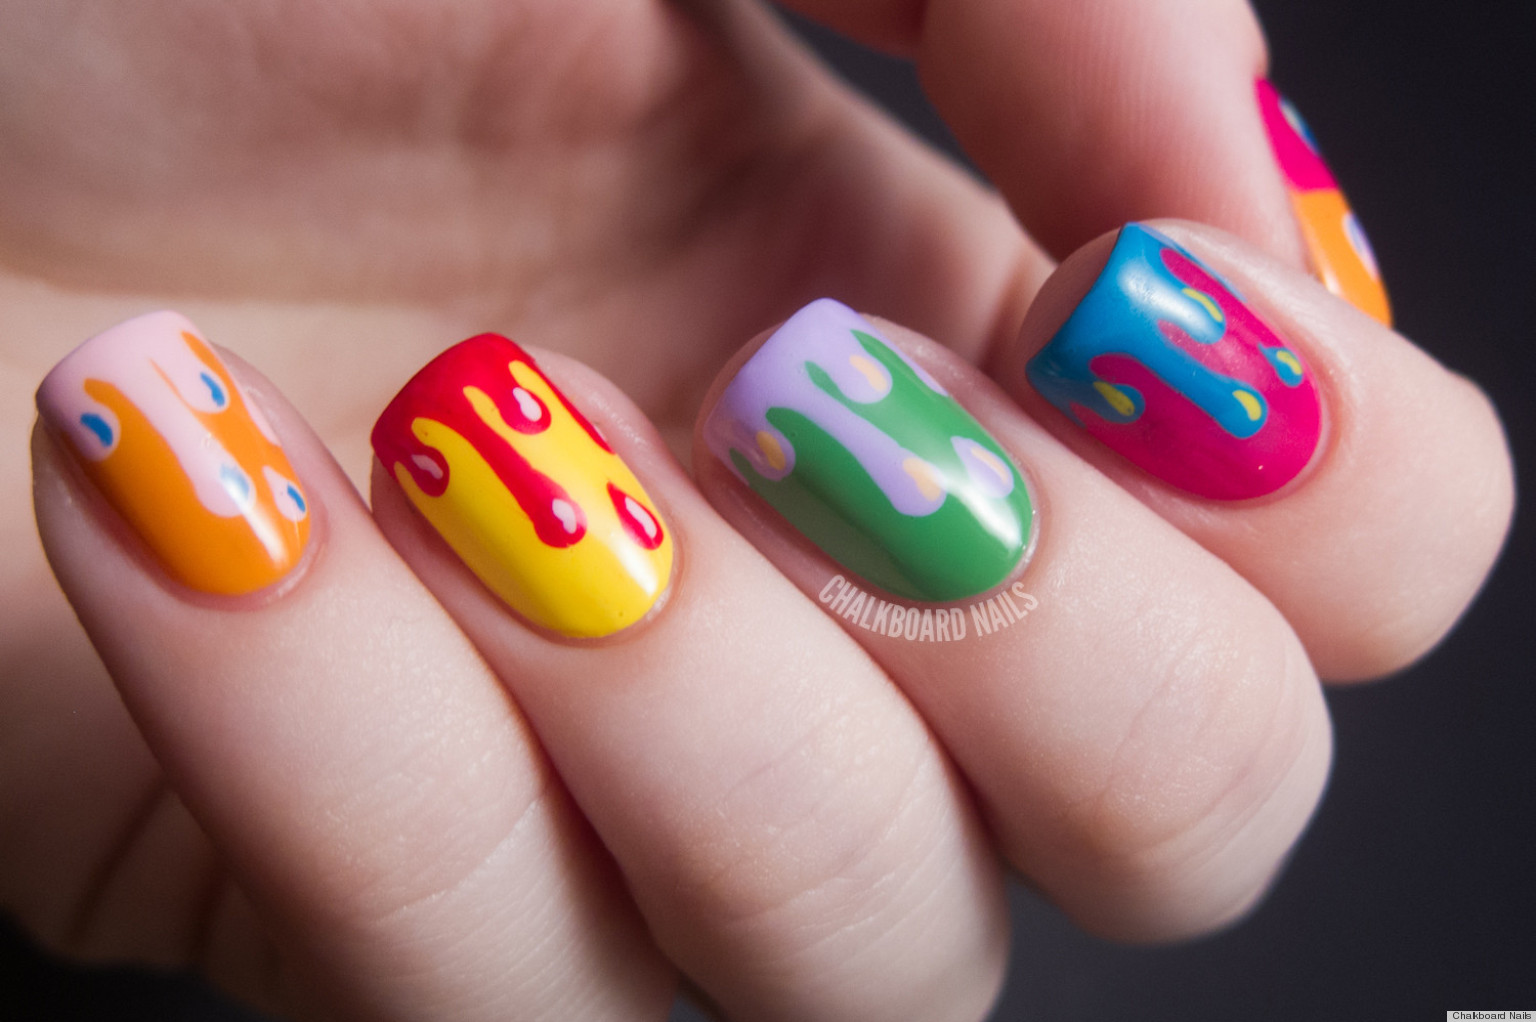 DIY Nail Ideas: Paint Drip Nail Art And More Of Our Manicures From